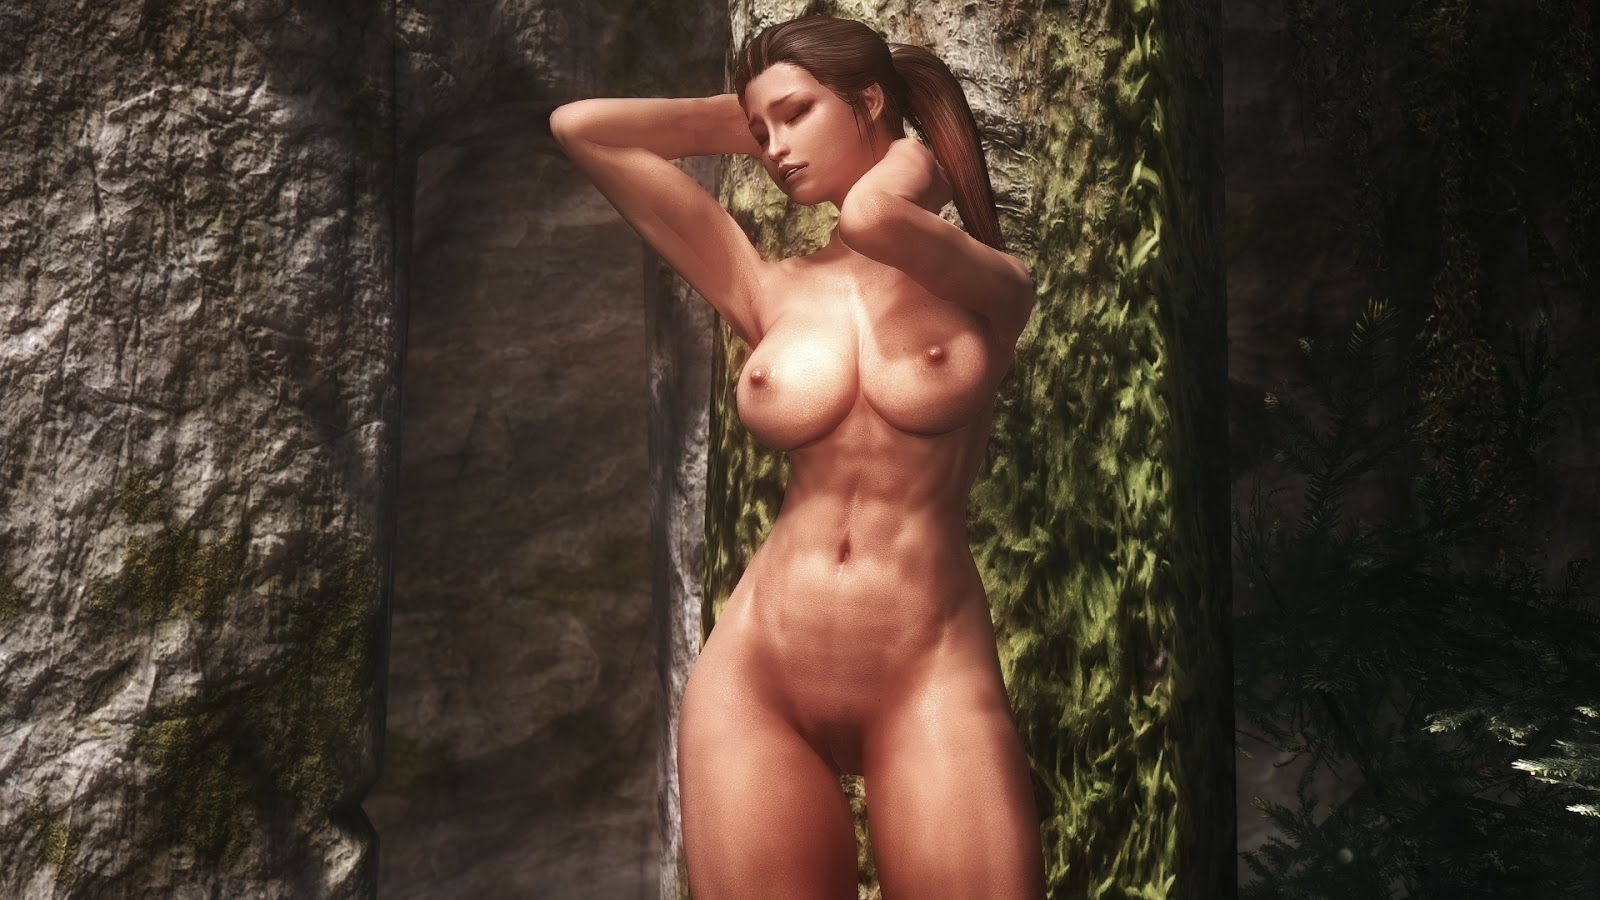 Skyrim nude female download erotic tube